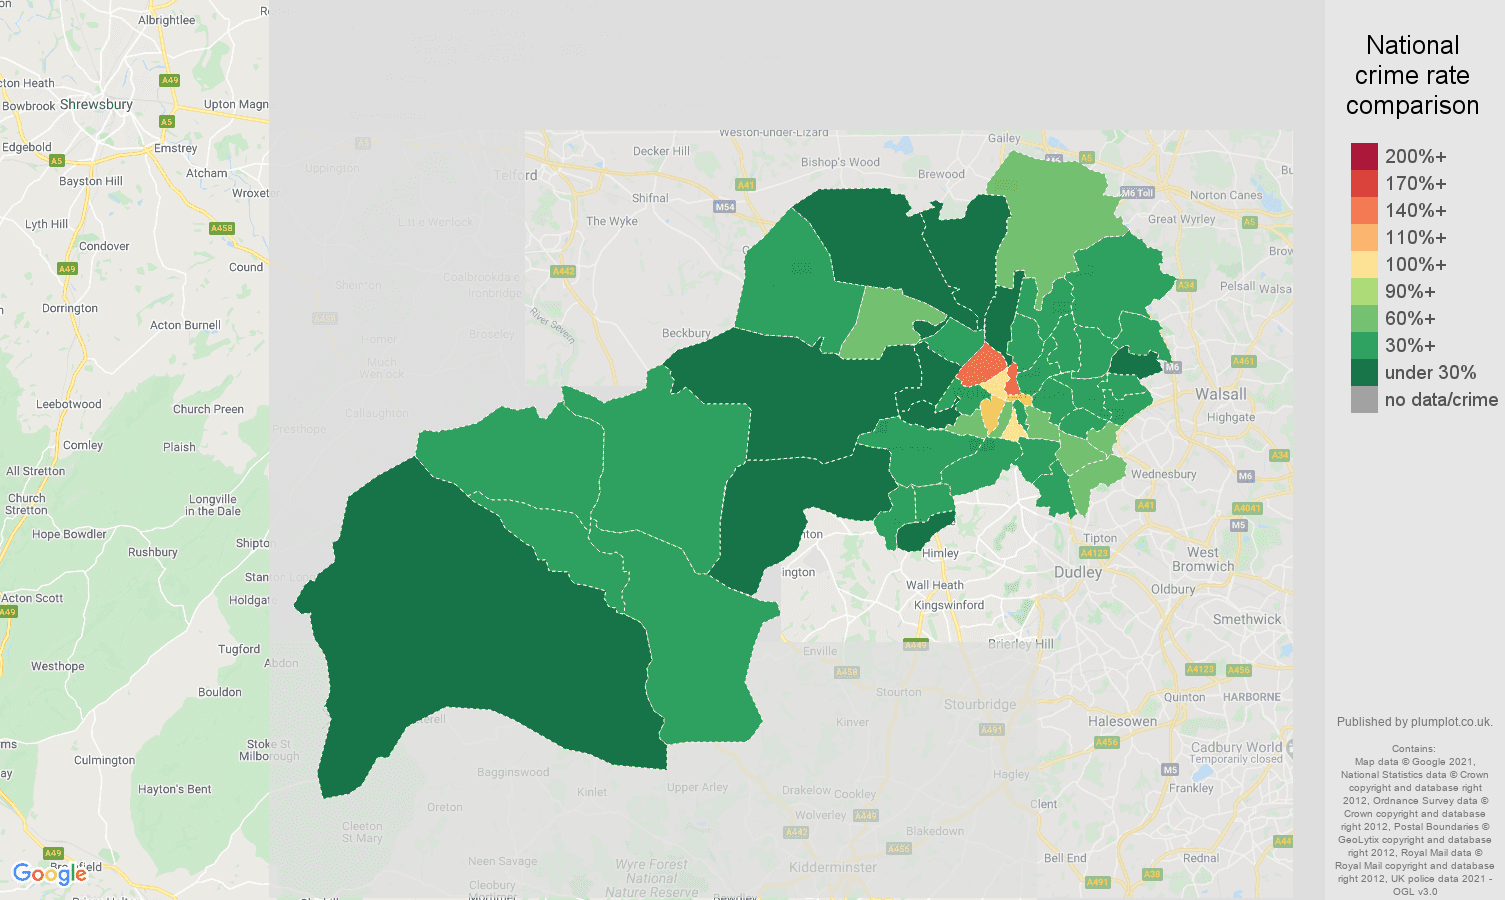 Wolverhampton drugs crime rate comparison map